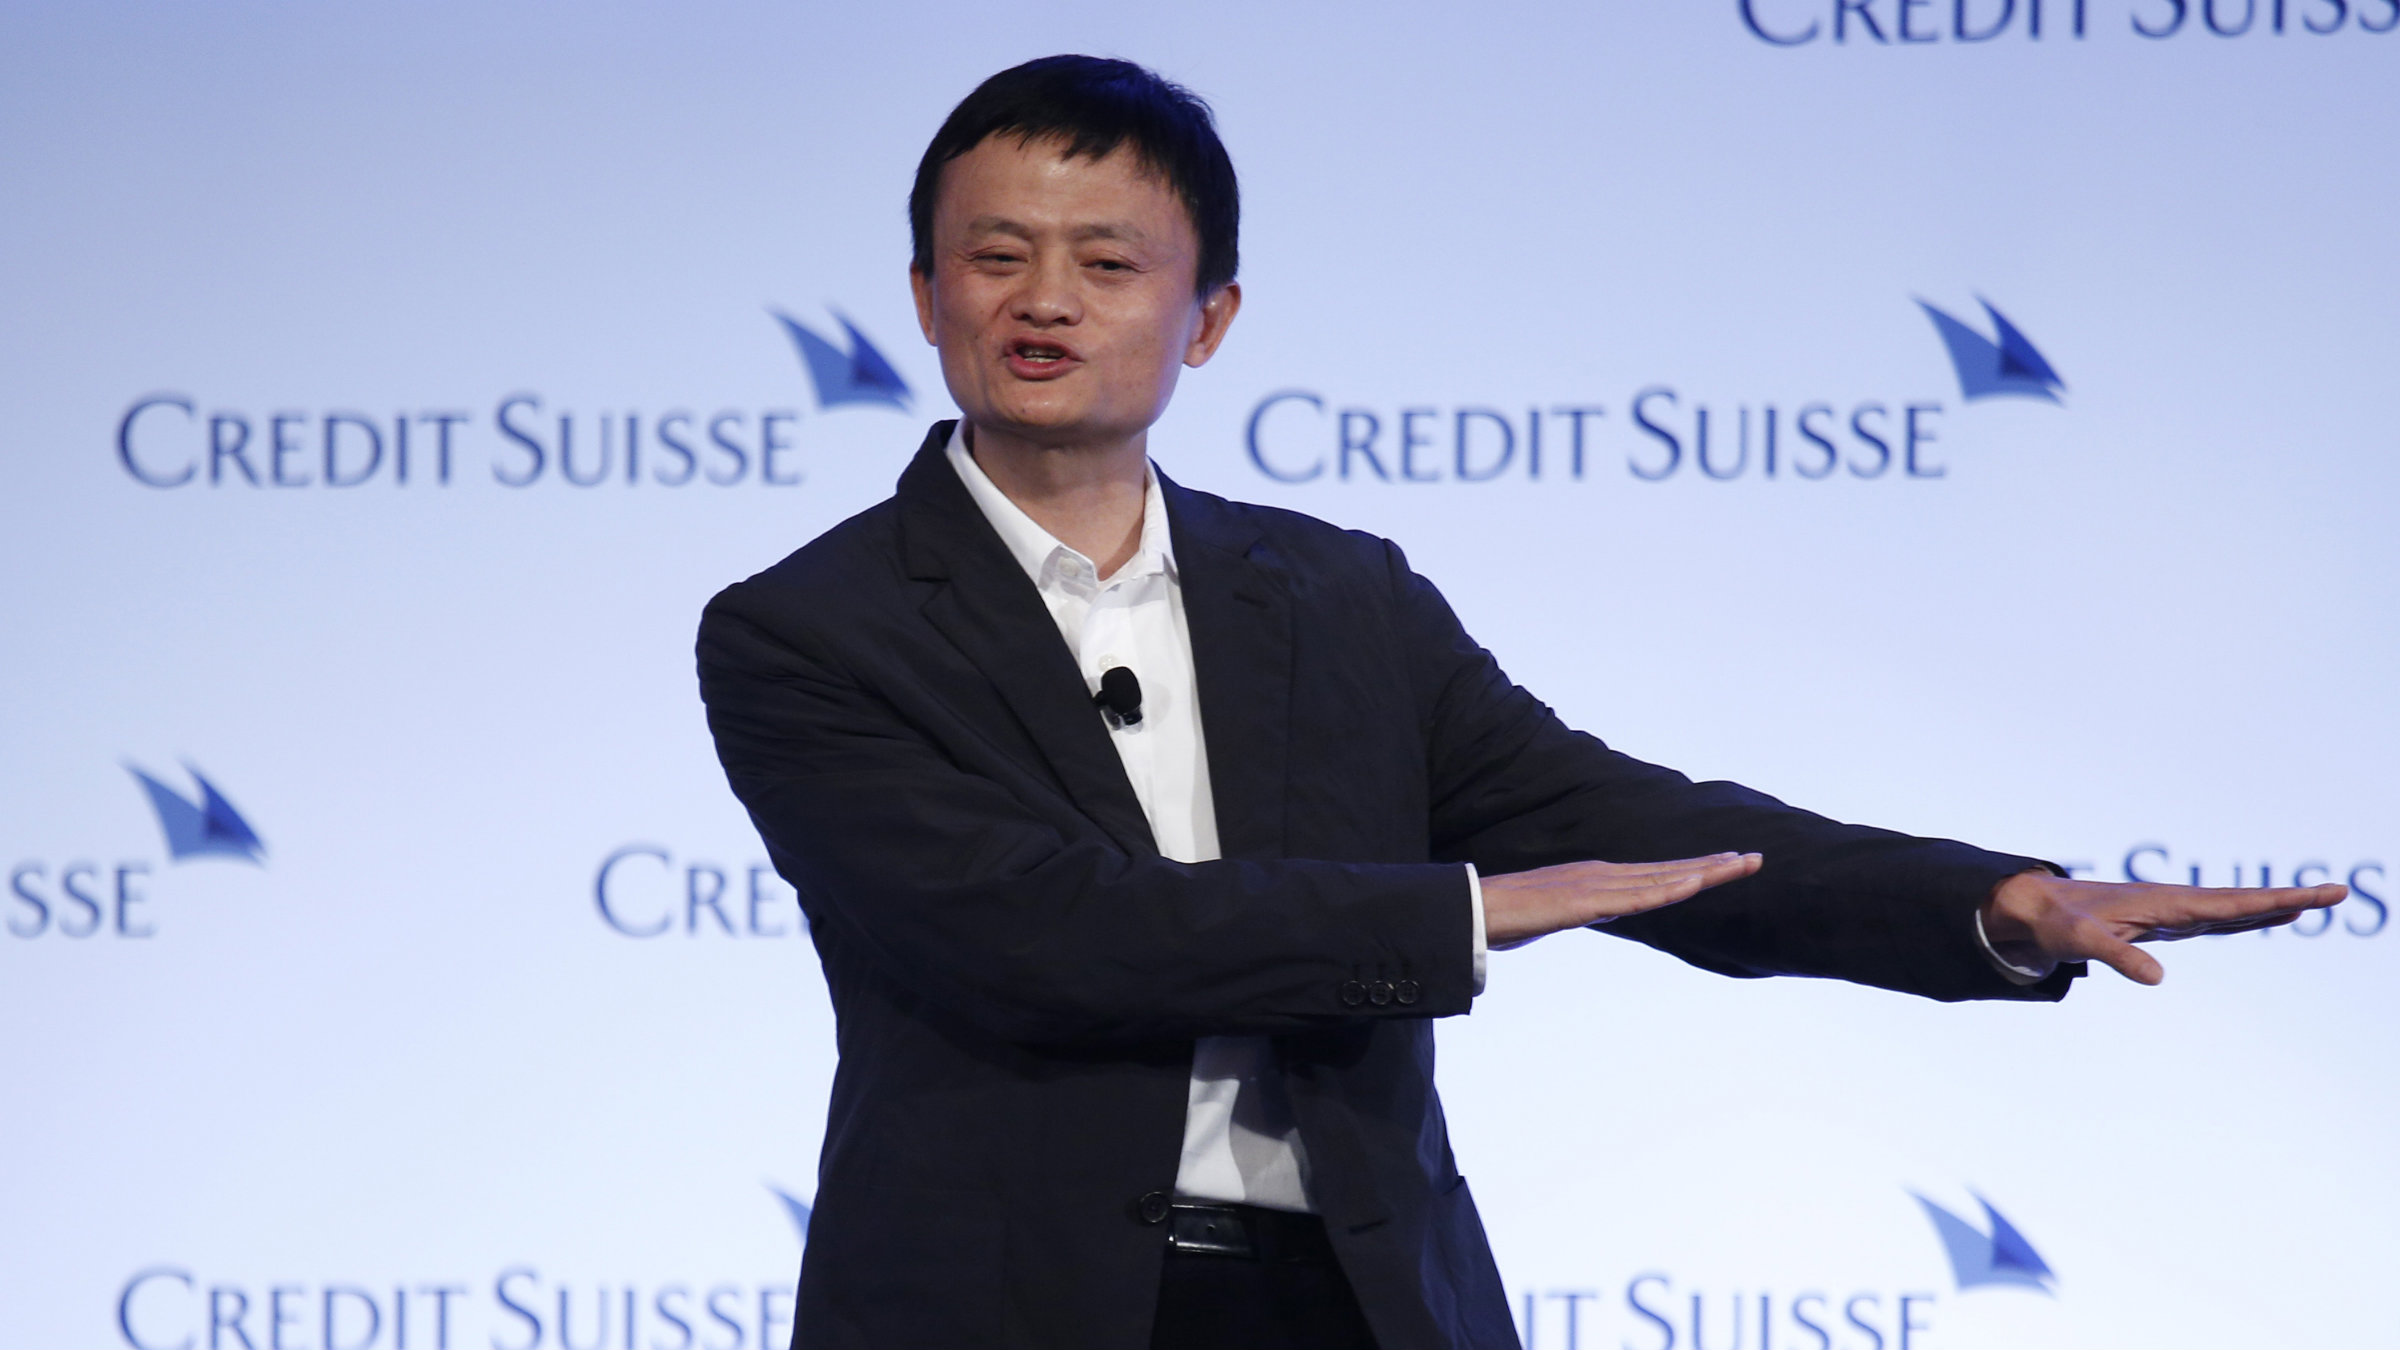 Jack Ma, chairman of China's largest e-commerce firm Alibaba Group, gestures during a conference in Hong Kong.